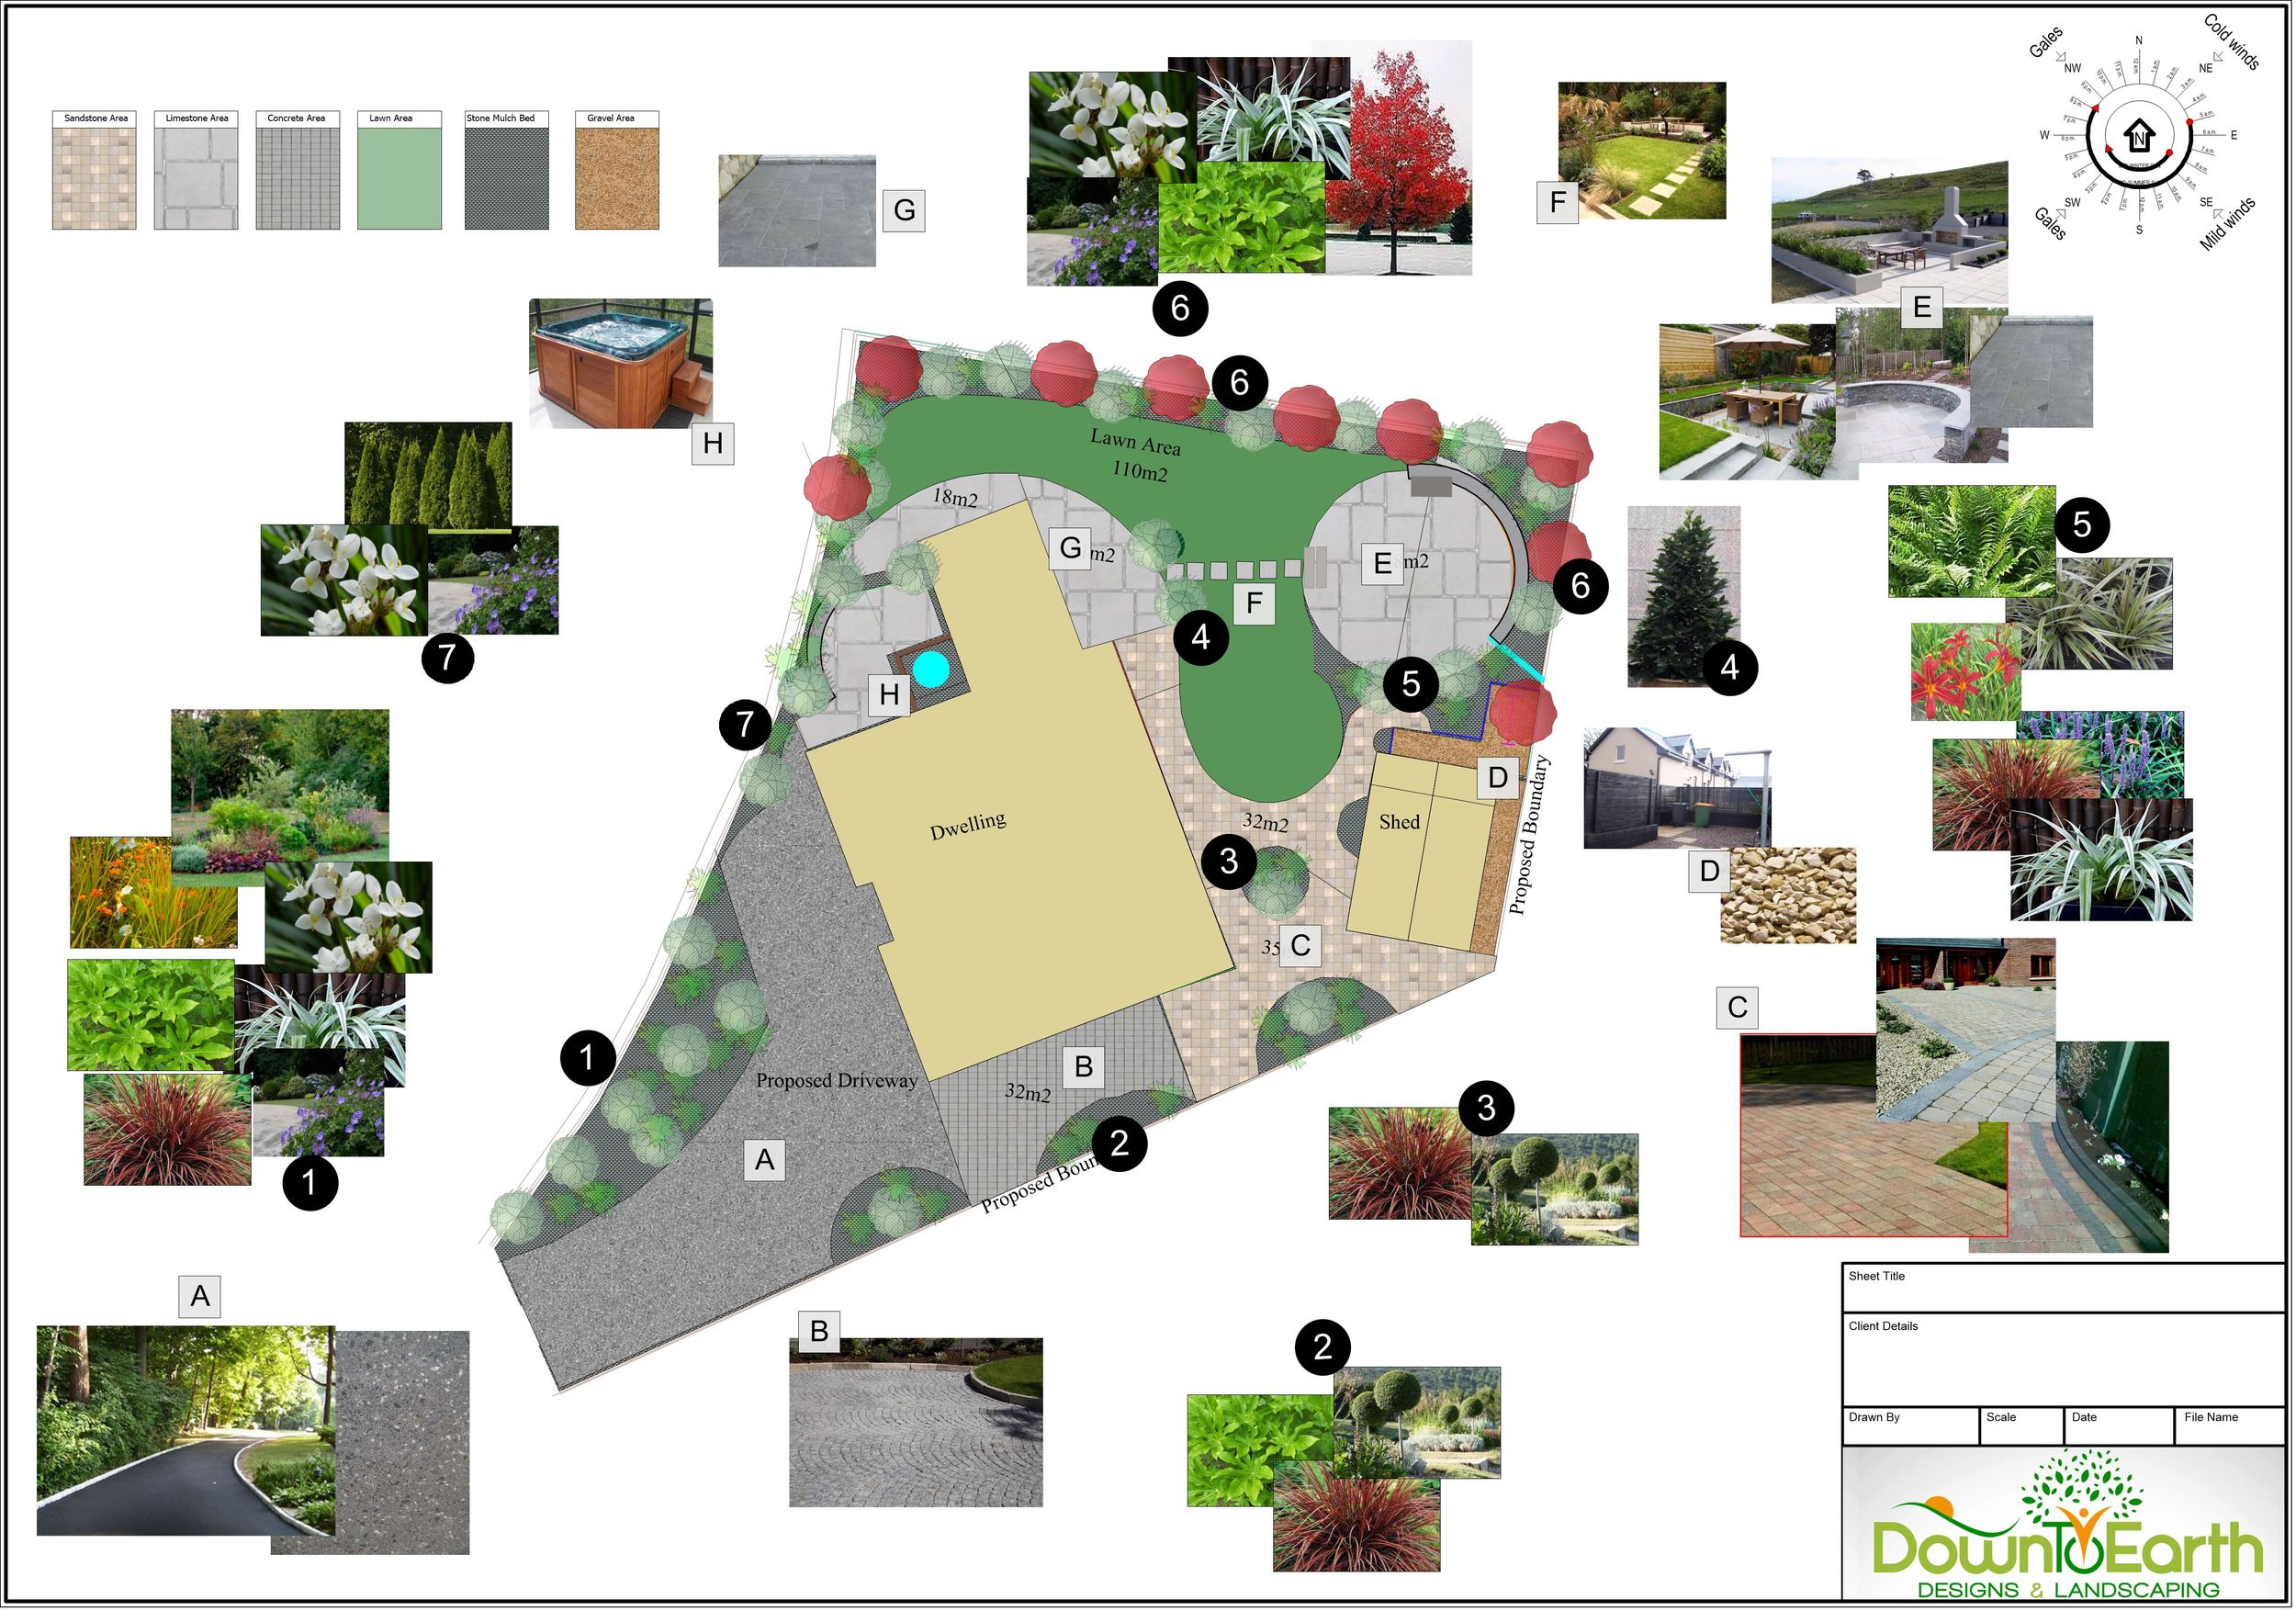 Mark Boyle_d2e_Design Concept Plan.jpg